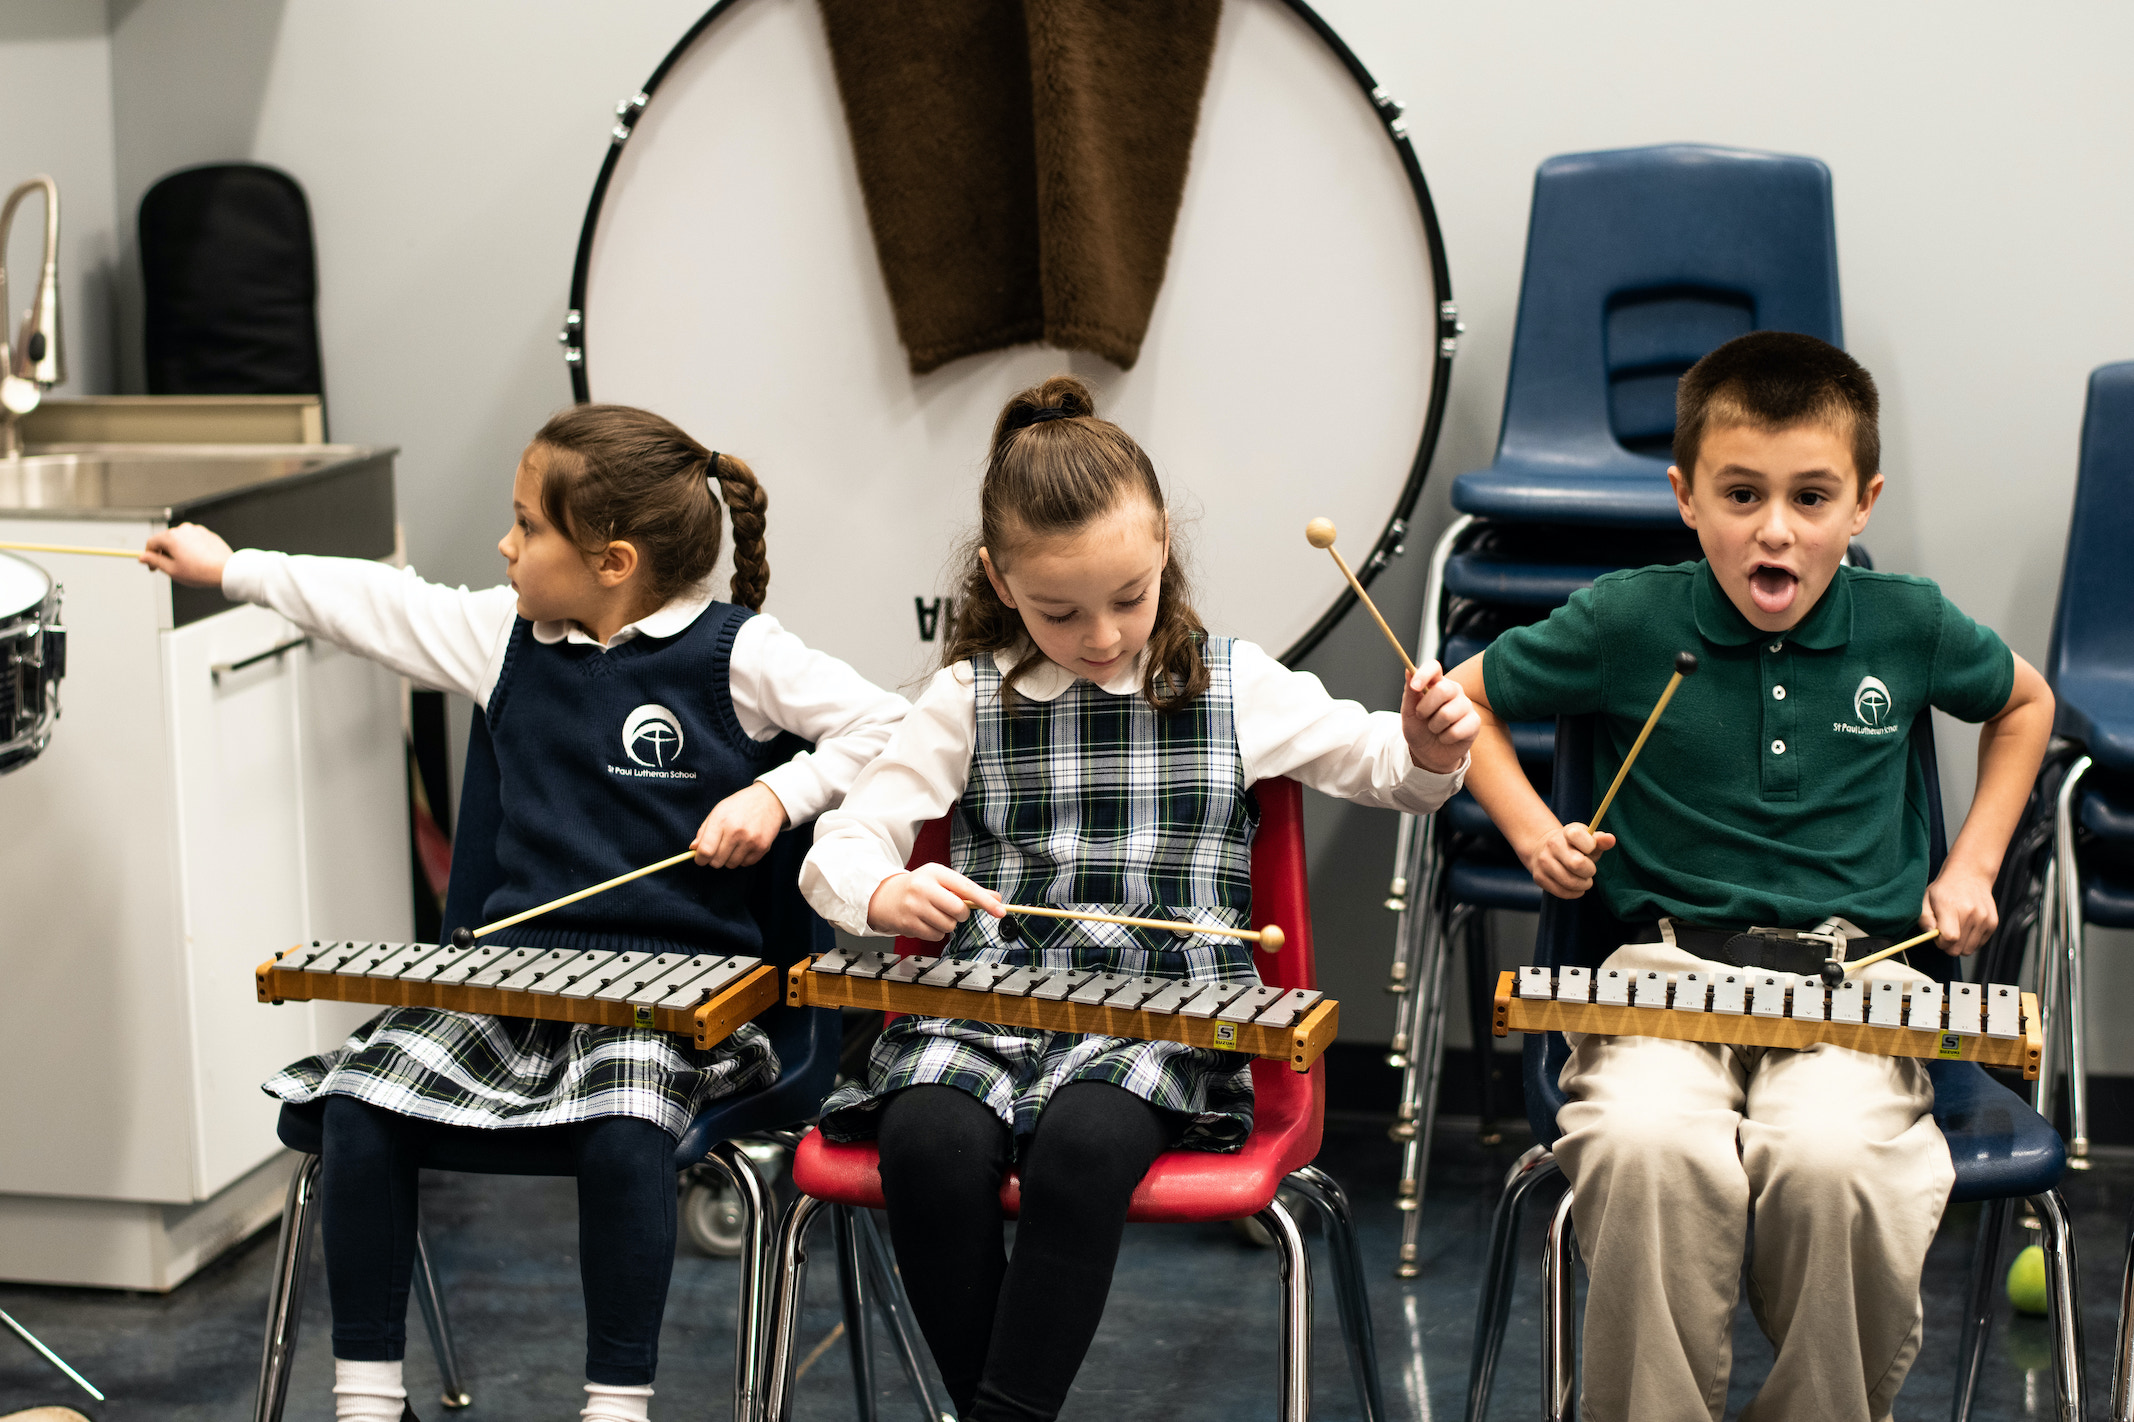 pupils in the music class